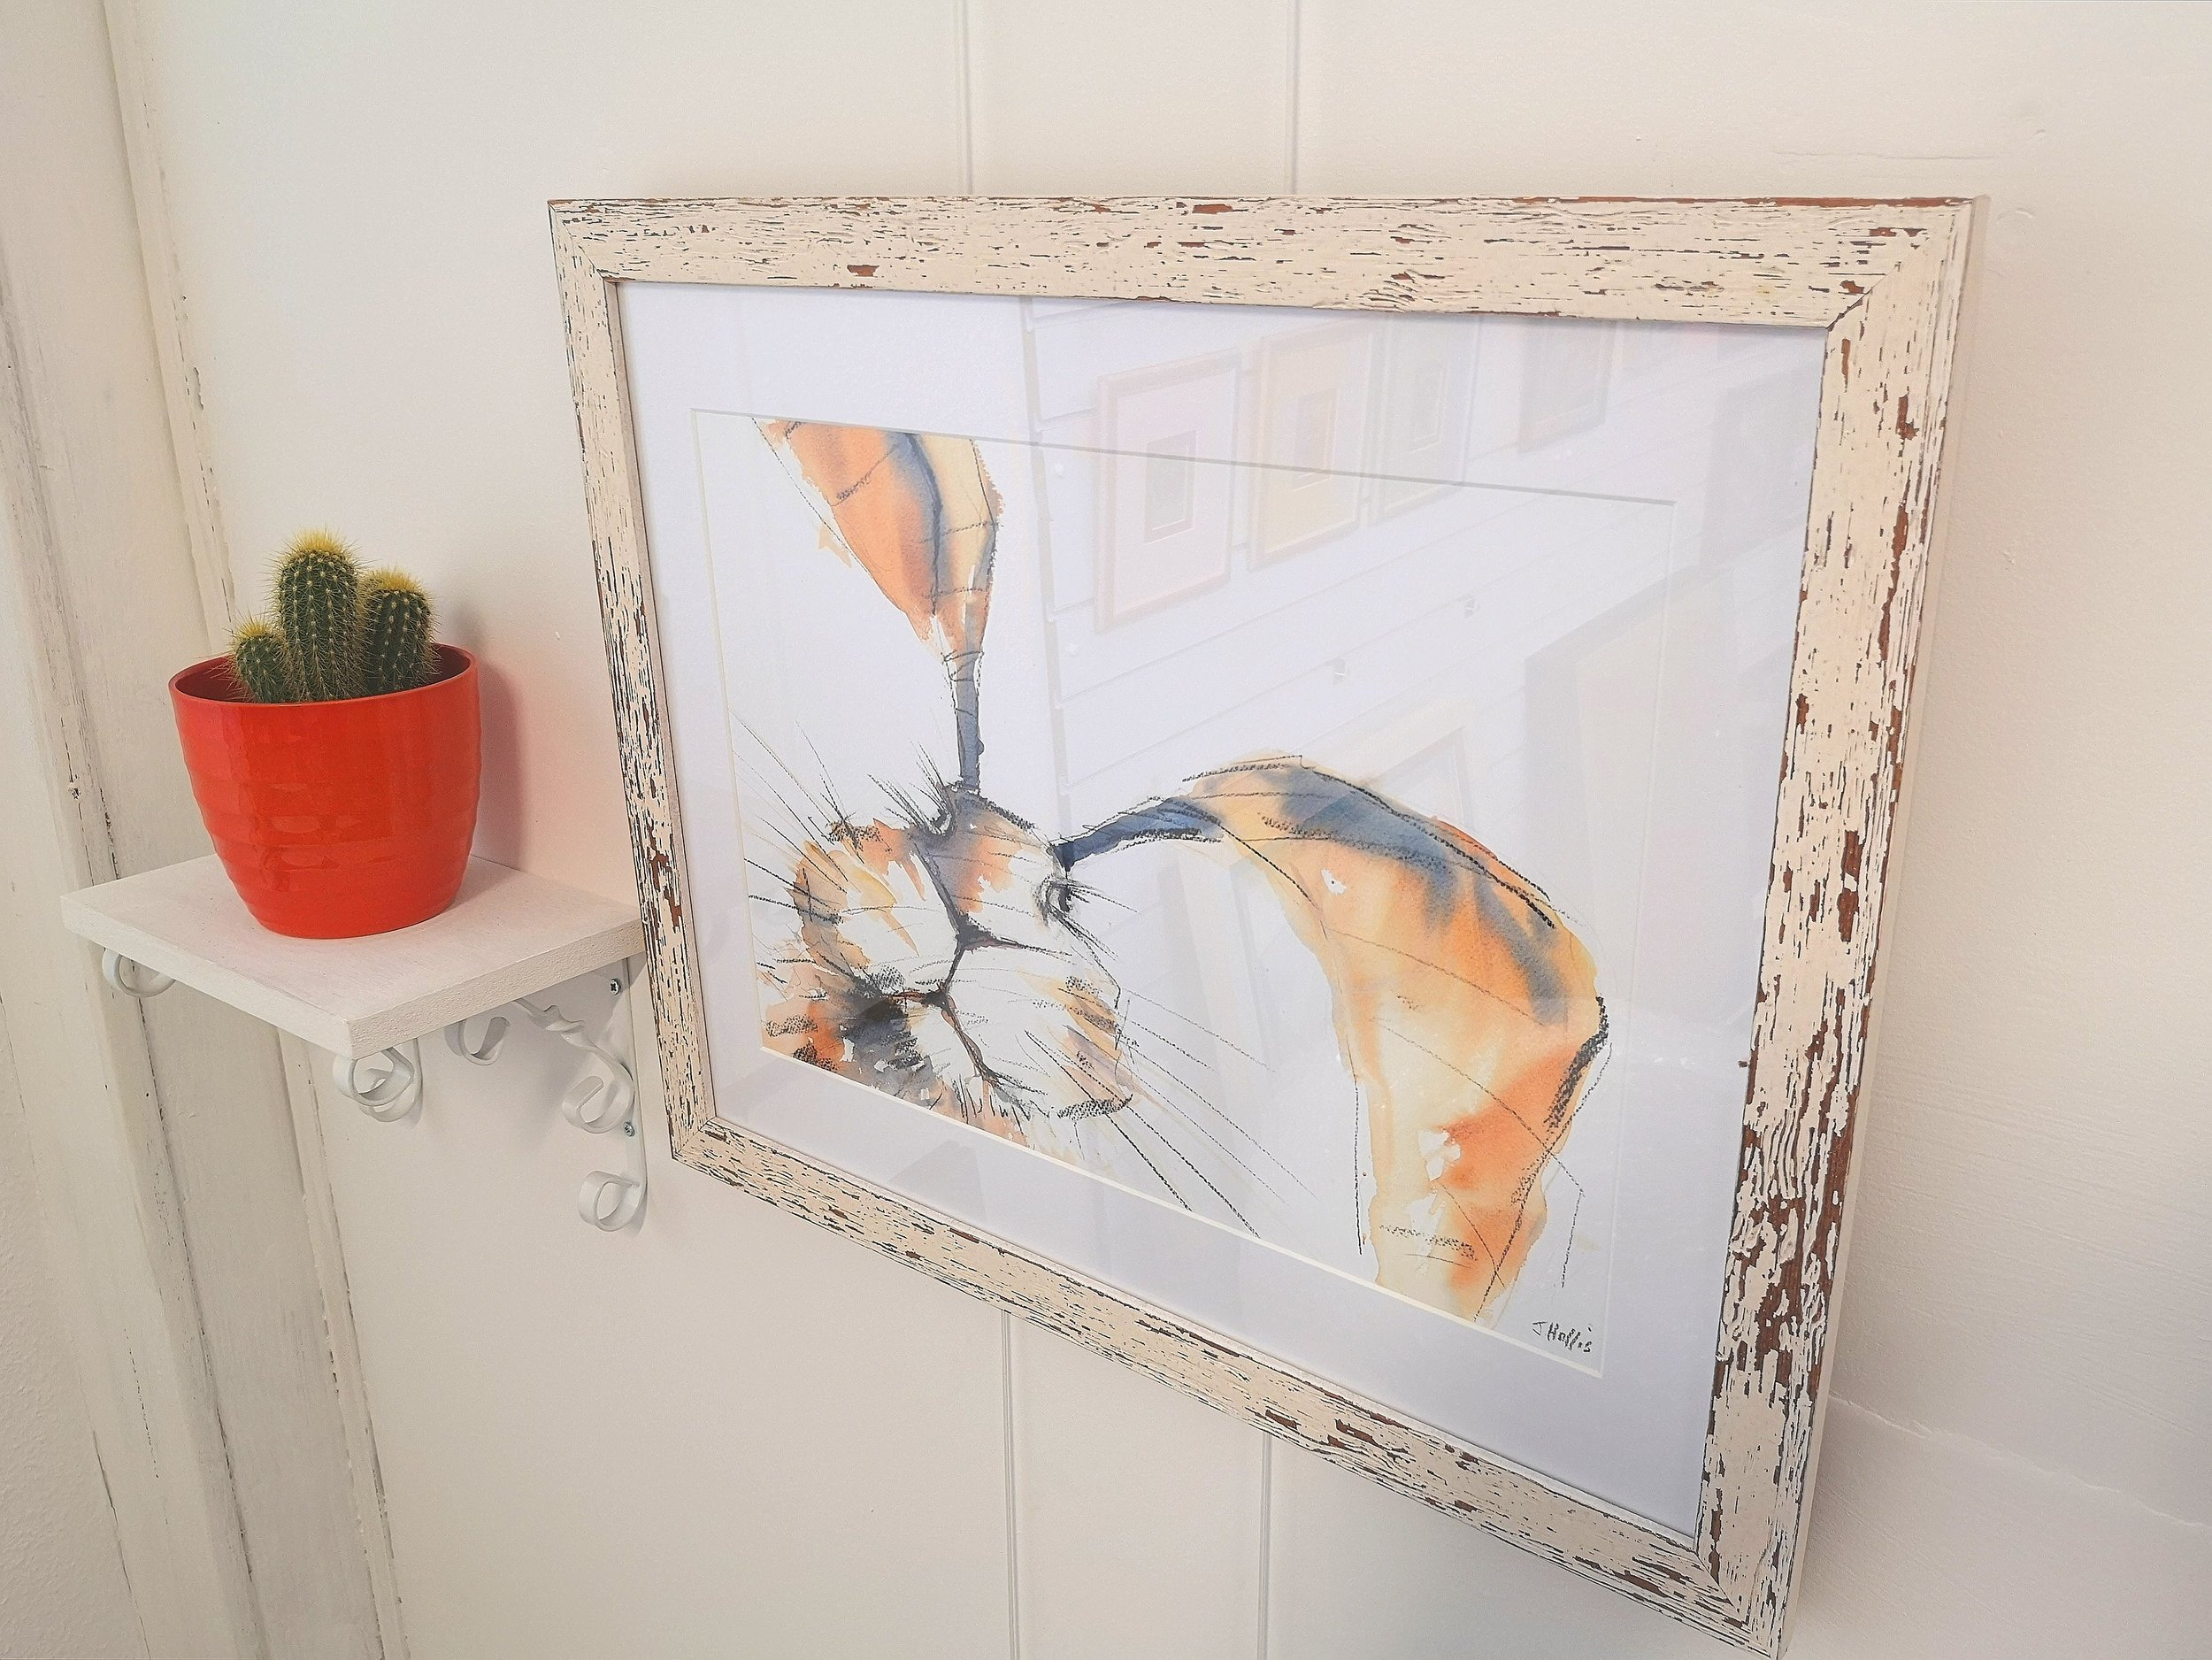 crayford-picture-framing-rabbit-art.jpg